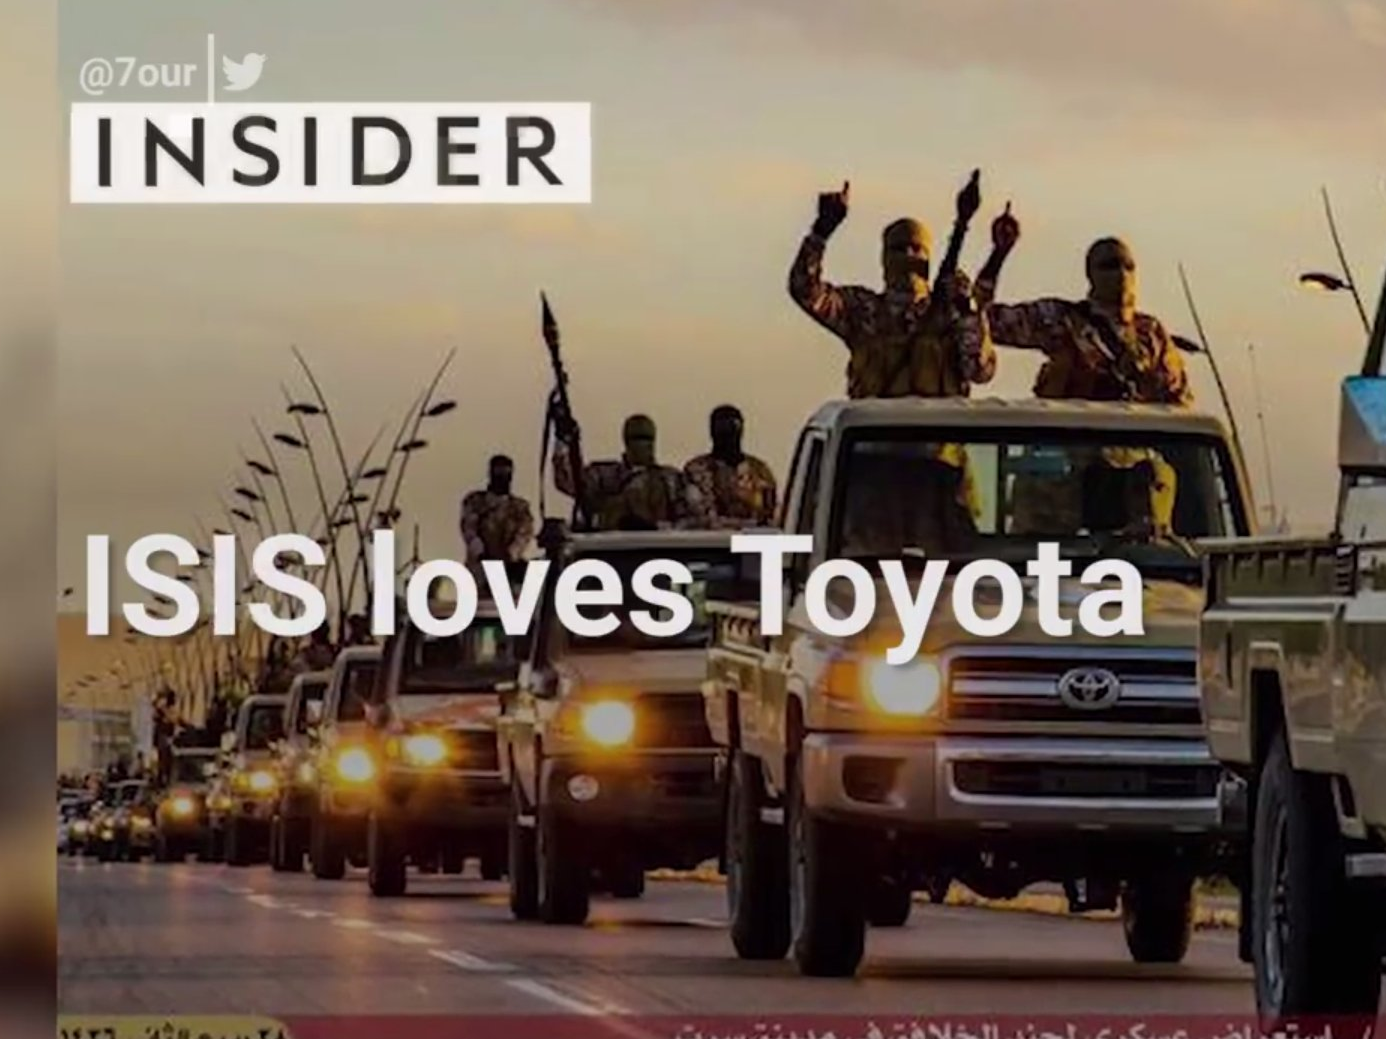 http://static4.businessinsider.com/image/5616d99269bedd825f07c190/isis-loves-toyota-trucks.jpg